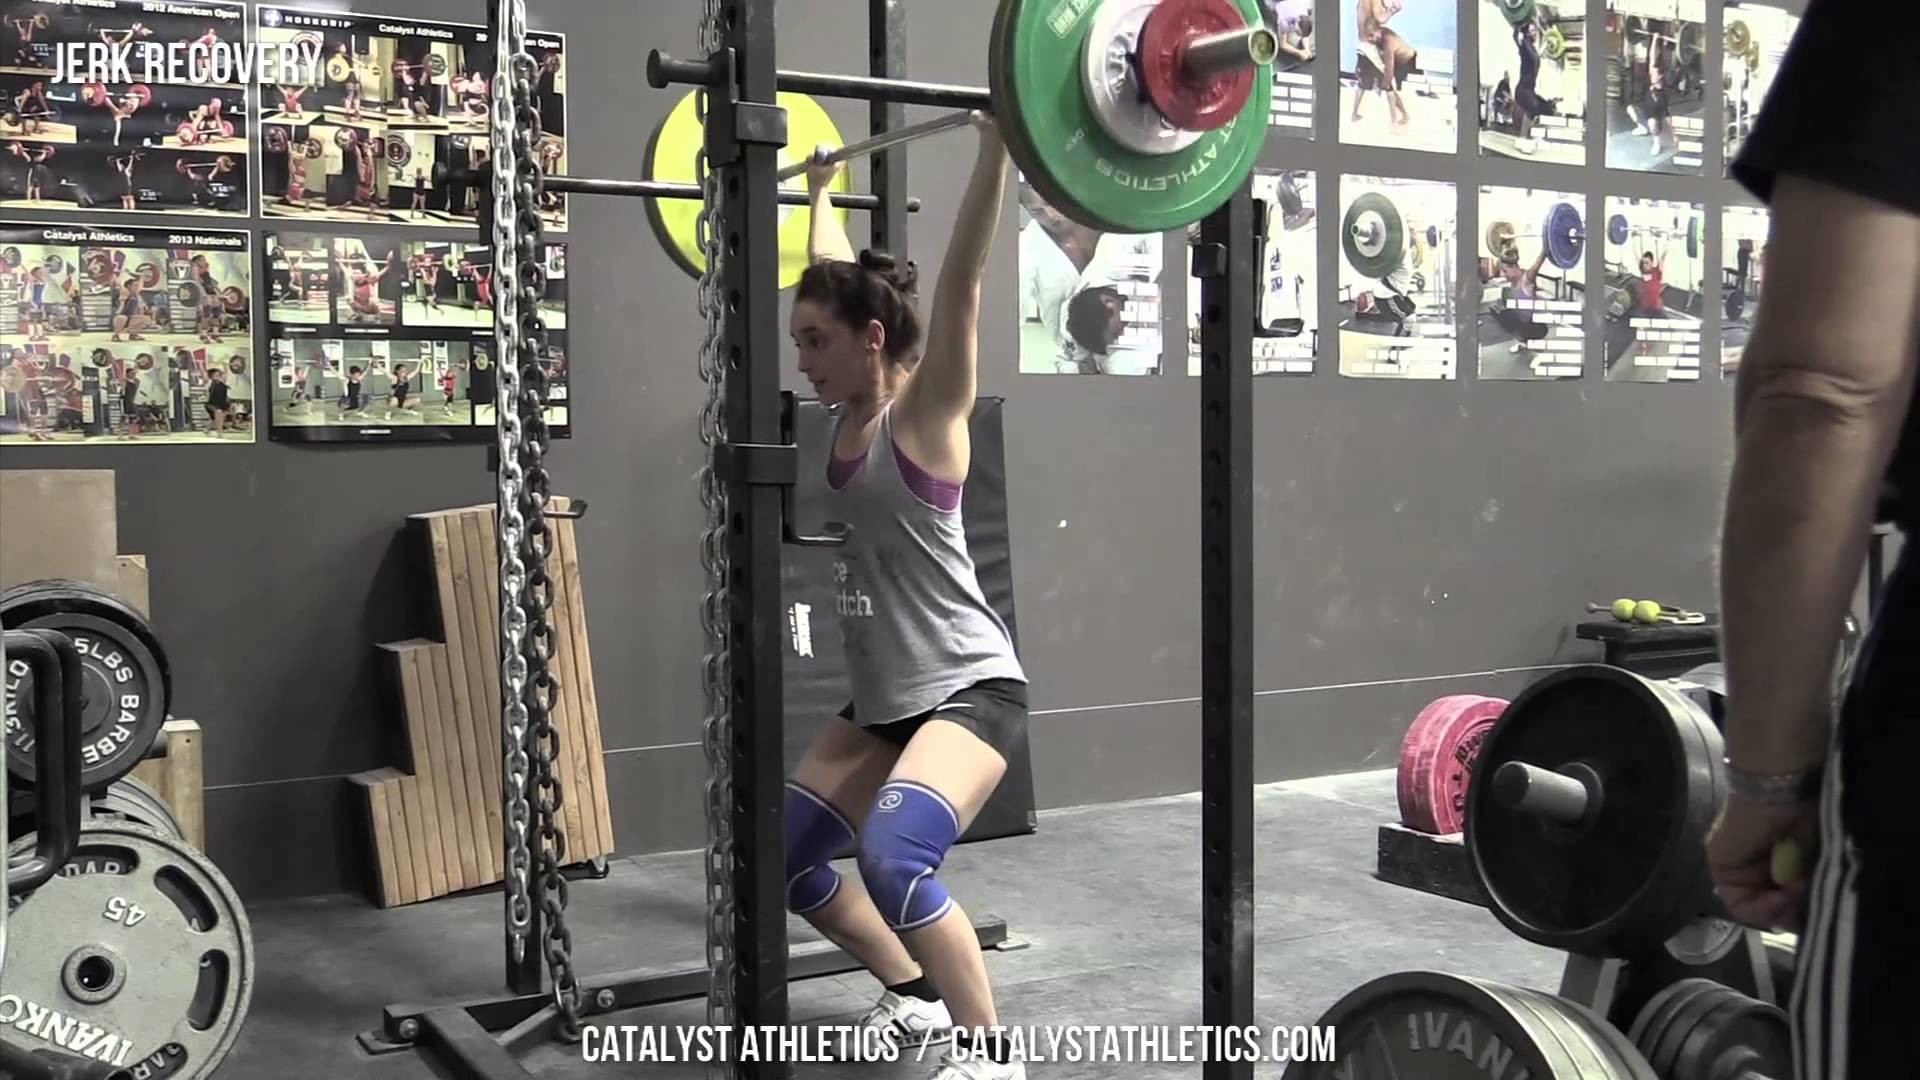 Jerk Recovery – Exercise Library: Demo Videos, Information & Terminology –  Catalyst Athletics Olympic Weightlifting